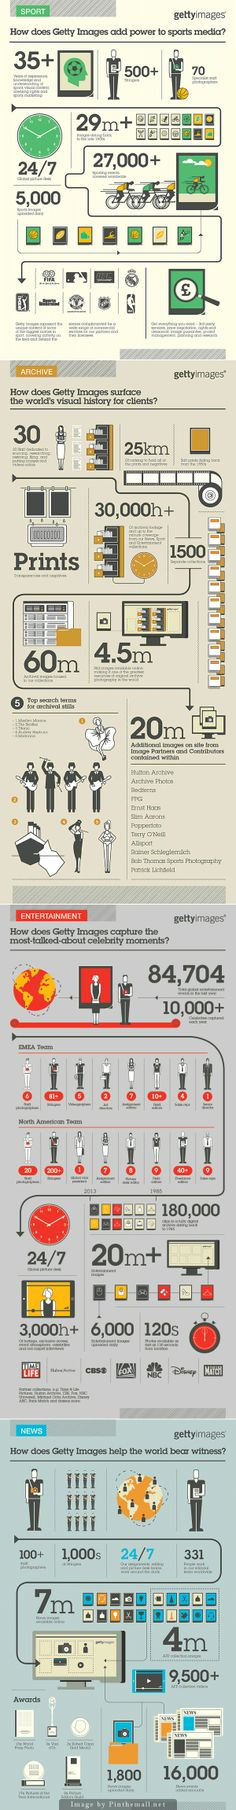 #Infographic Series for Getty Images